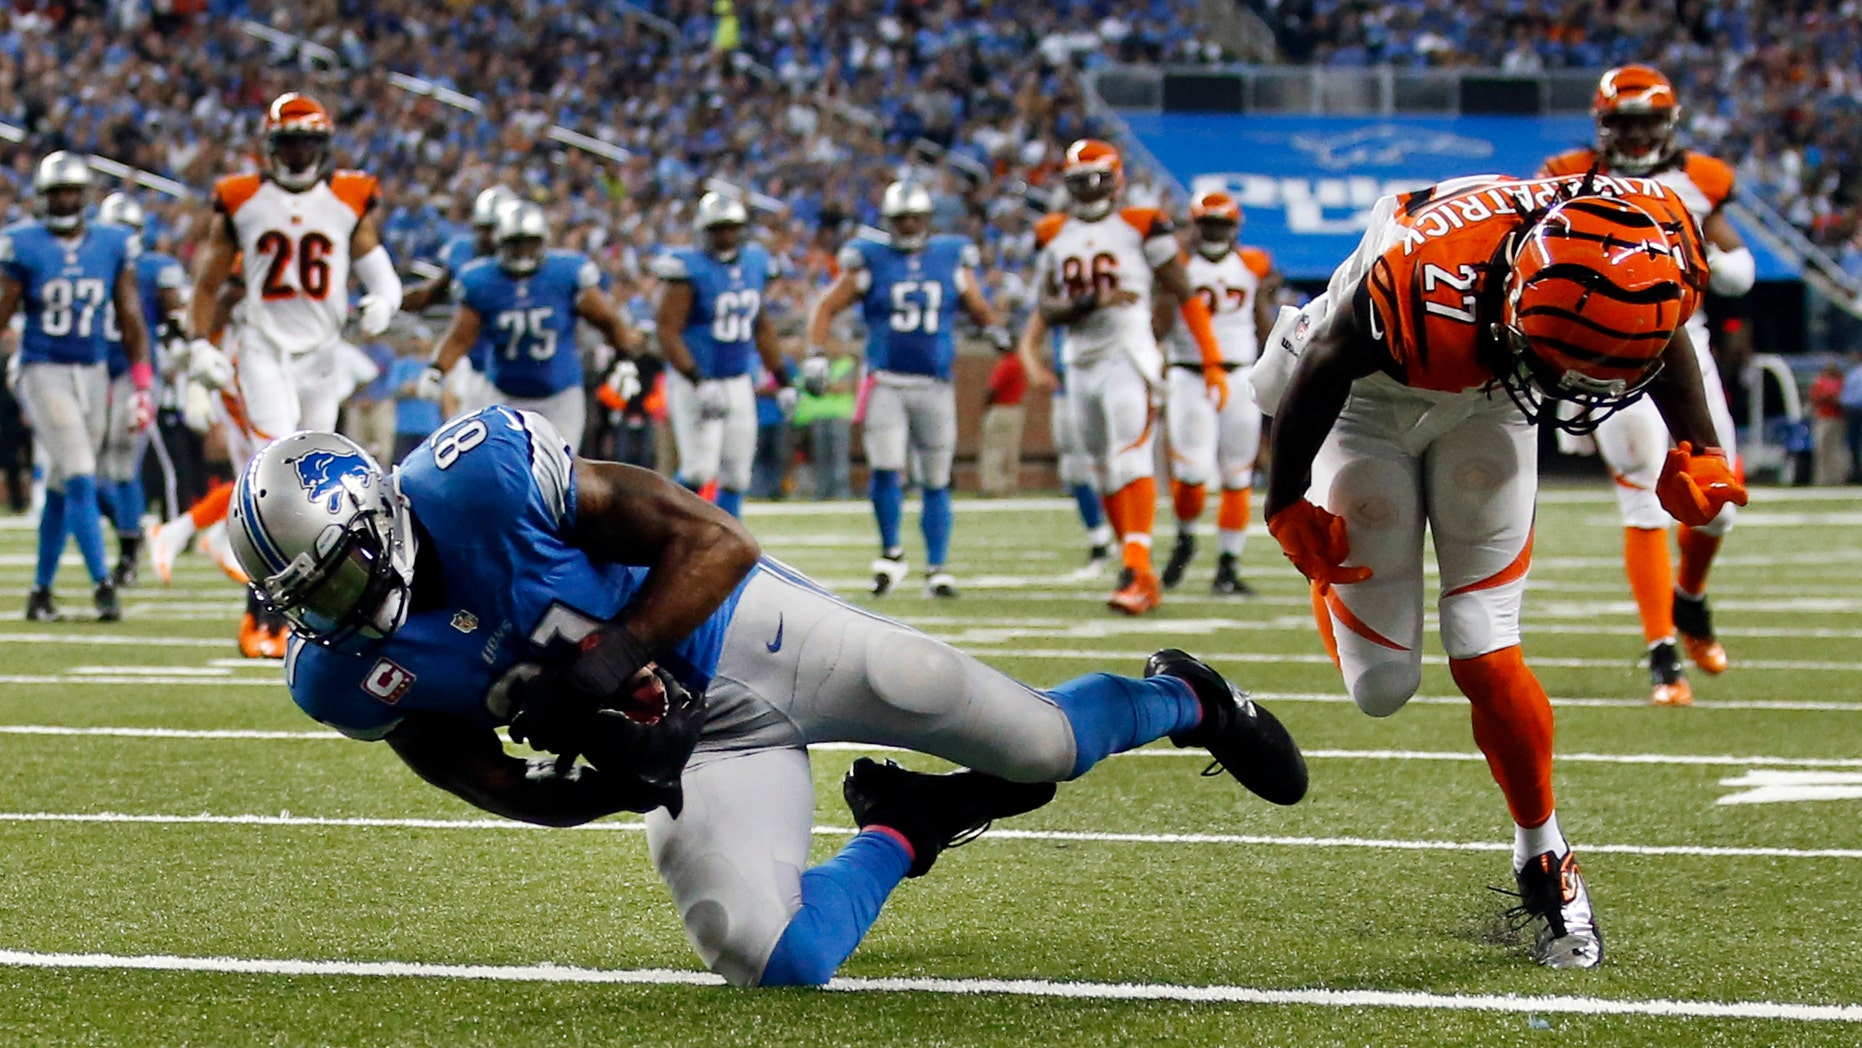 Detroit Lions wide receiver Calvin Johnson (81) catches a 27-yard touchdown reception as Cincinnati Bengals cornerback Dre Kirkpatrick (27) defends in the second half of an NFL football game on Sunday, Oct. 20, 2013, in Detroit. (AP Photo/Rick Osentoski)